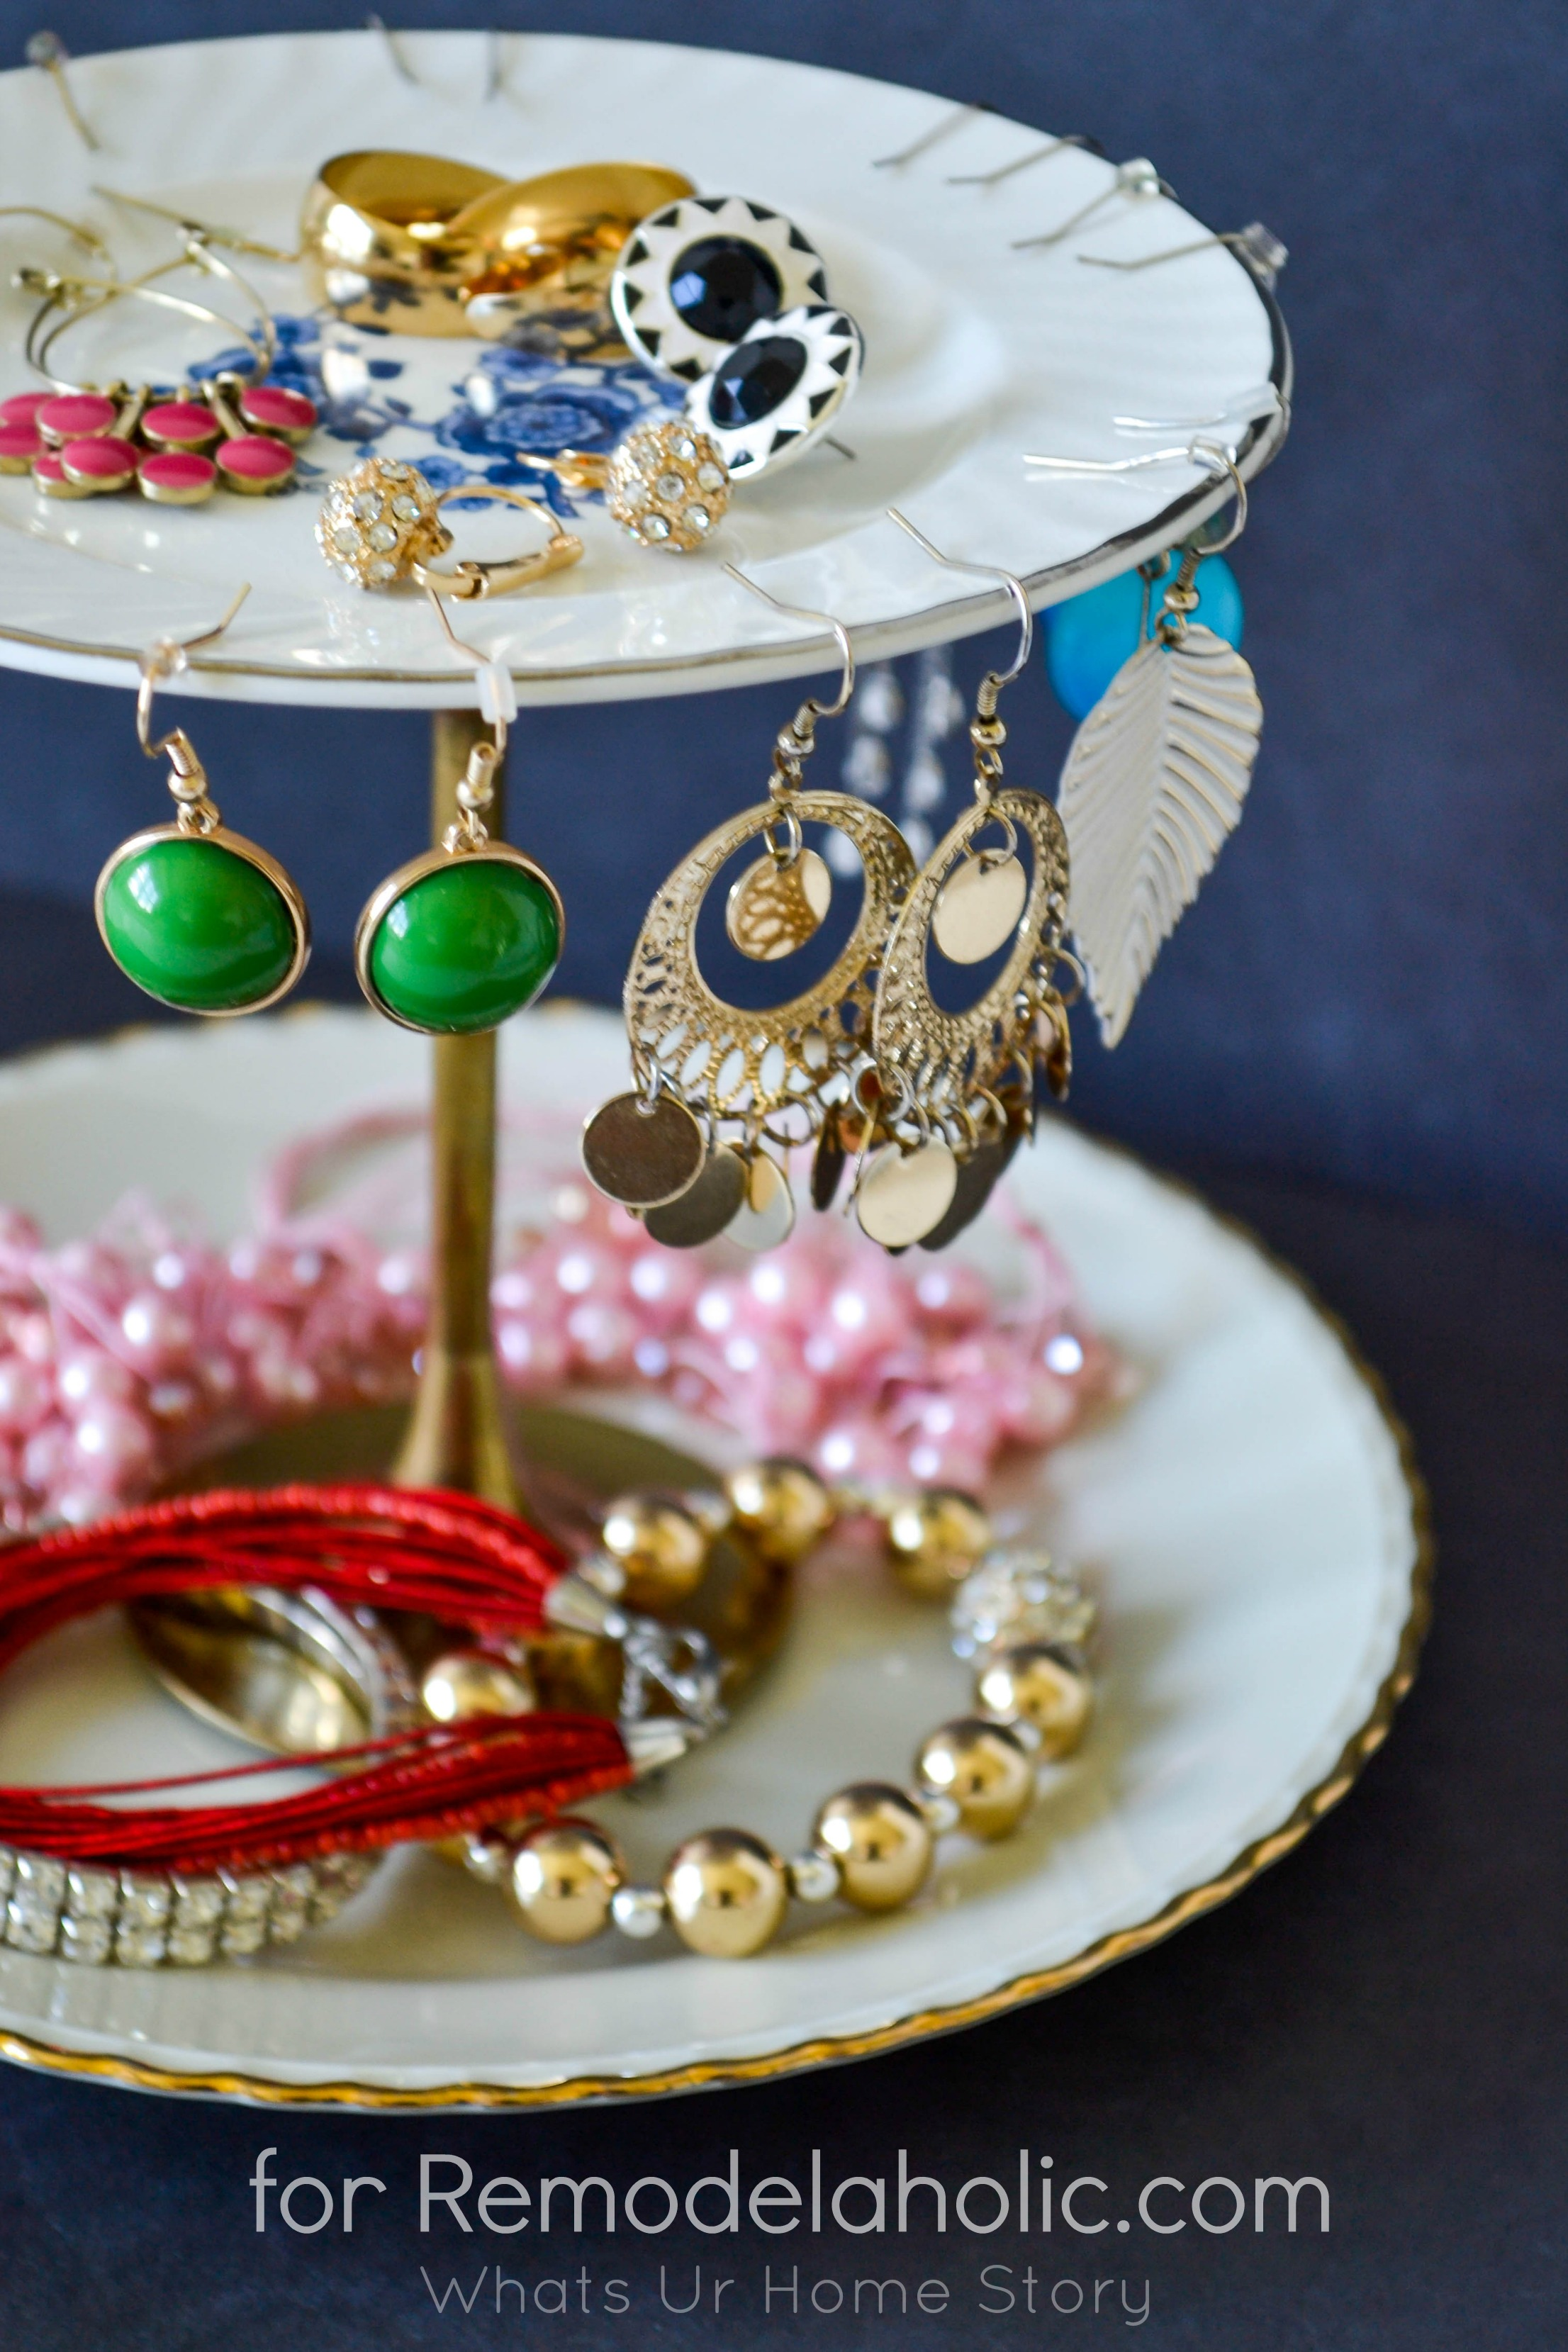 Remodelaholic | DIY Jewelry Stand